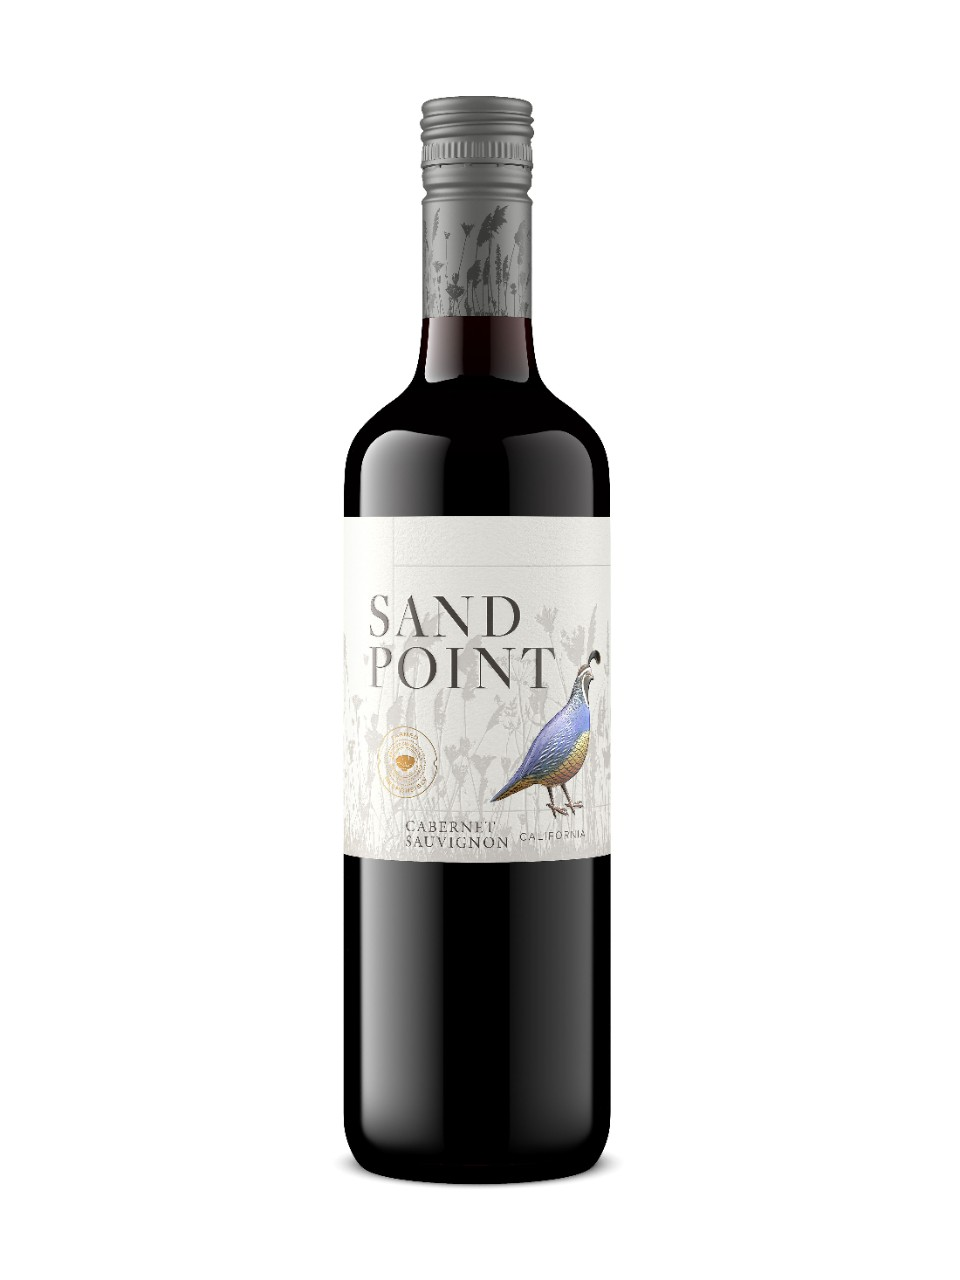 Sand Point Cabernet Sauvignon from LCBO